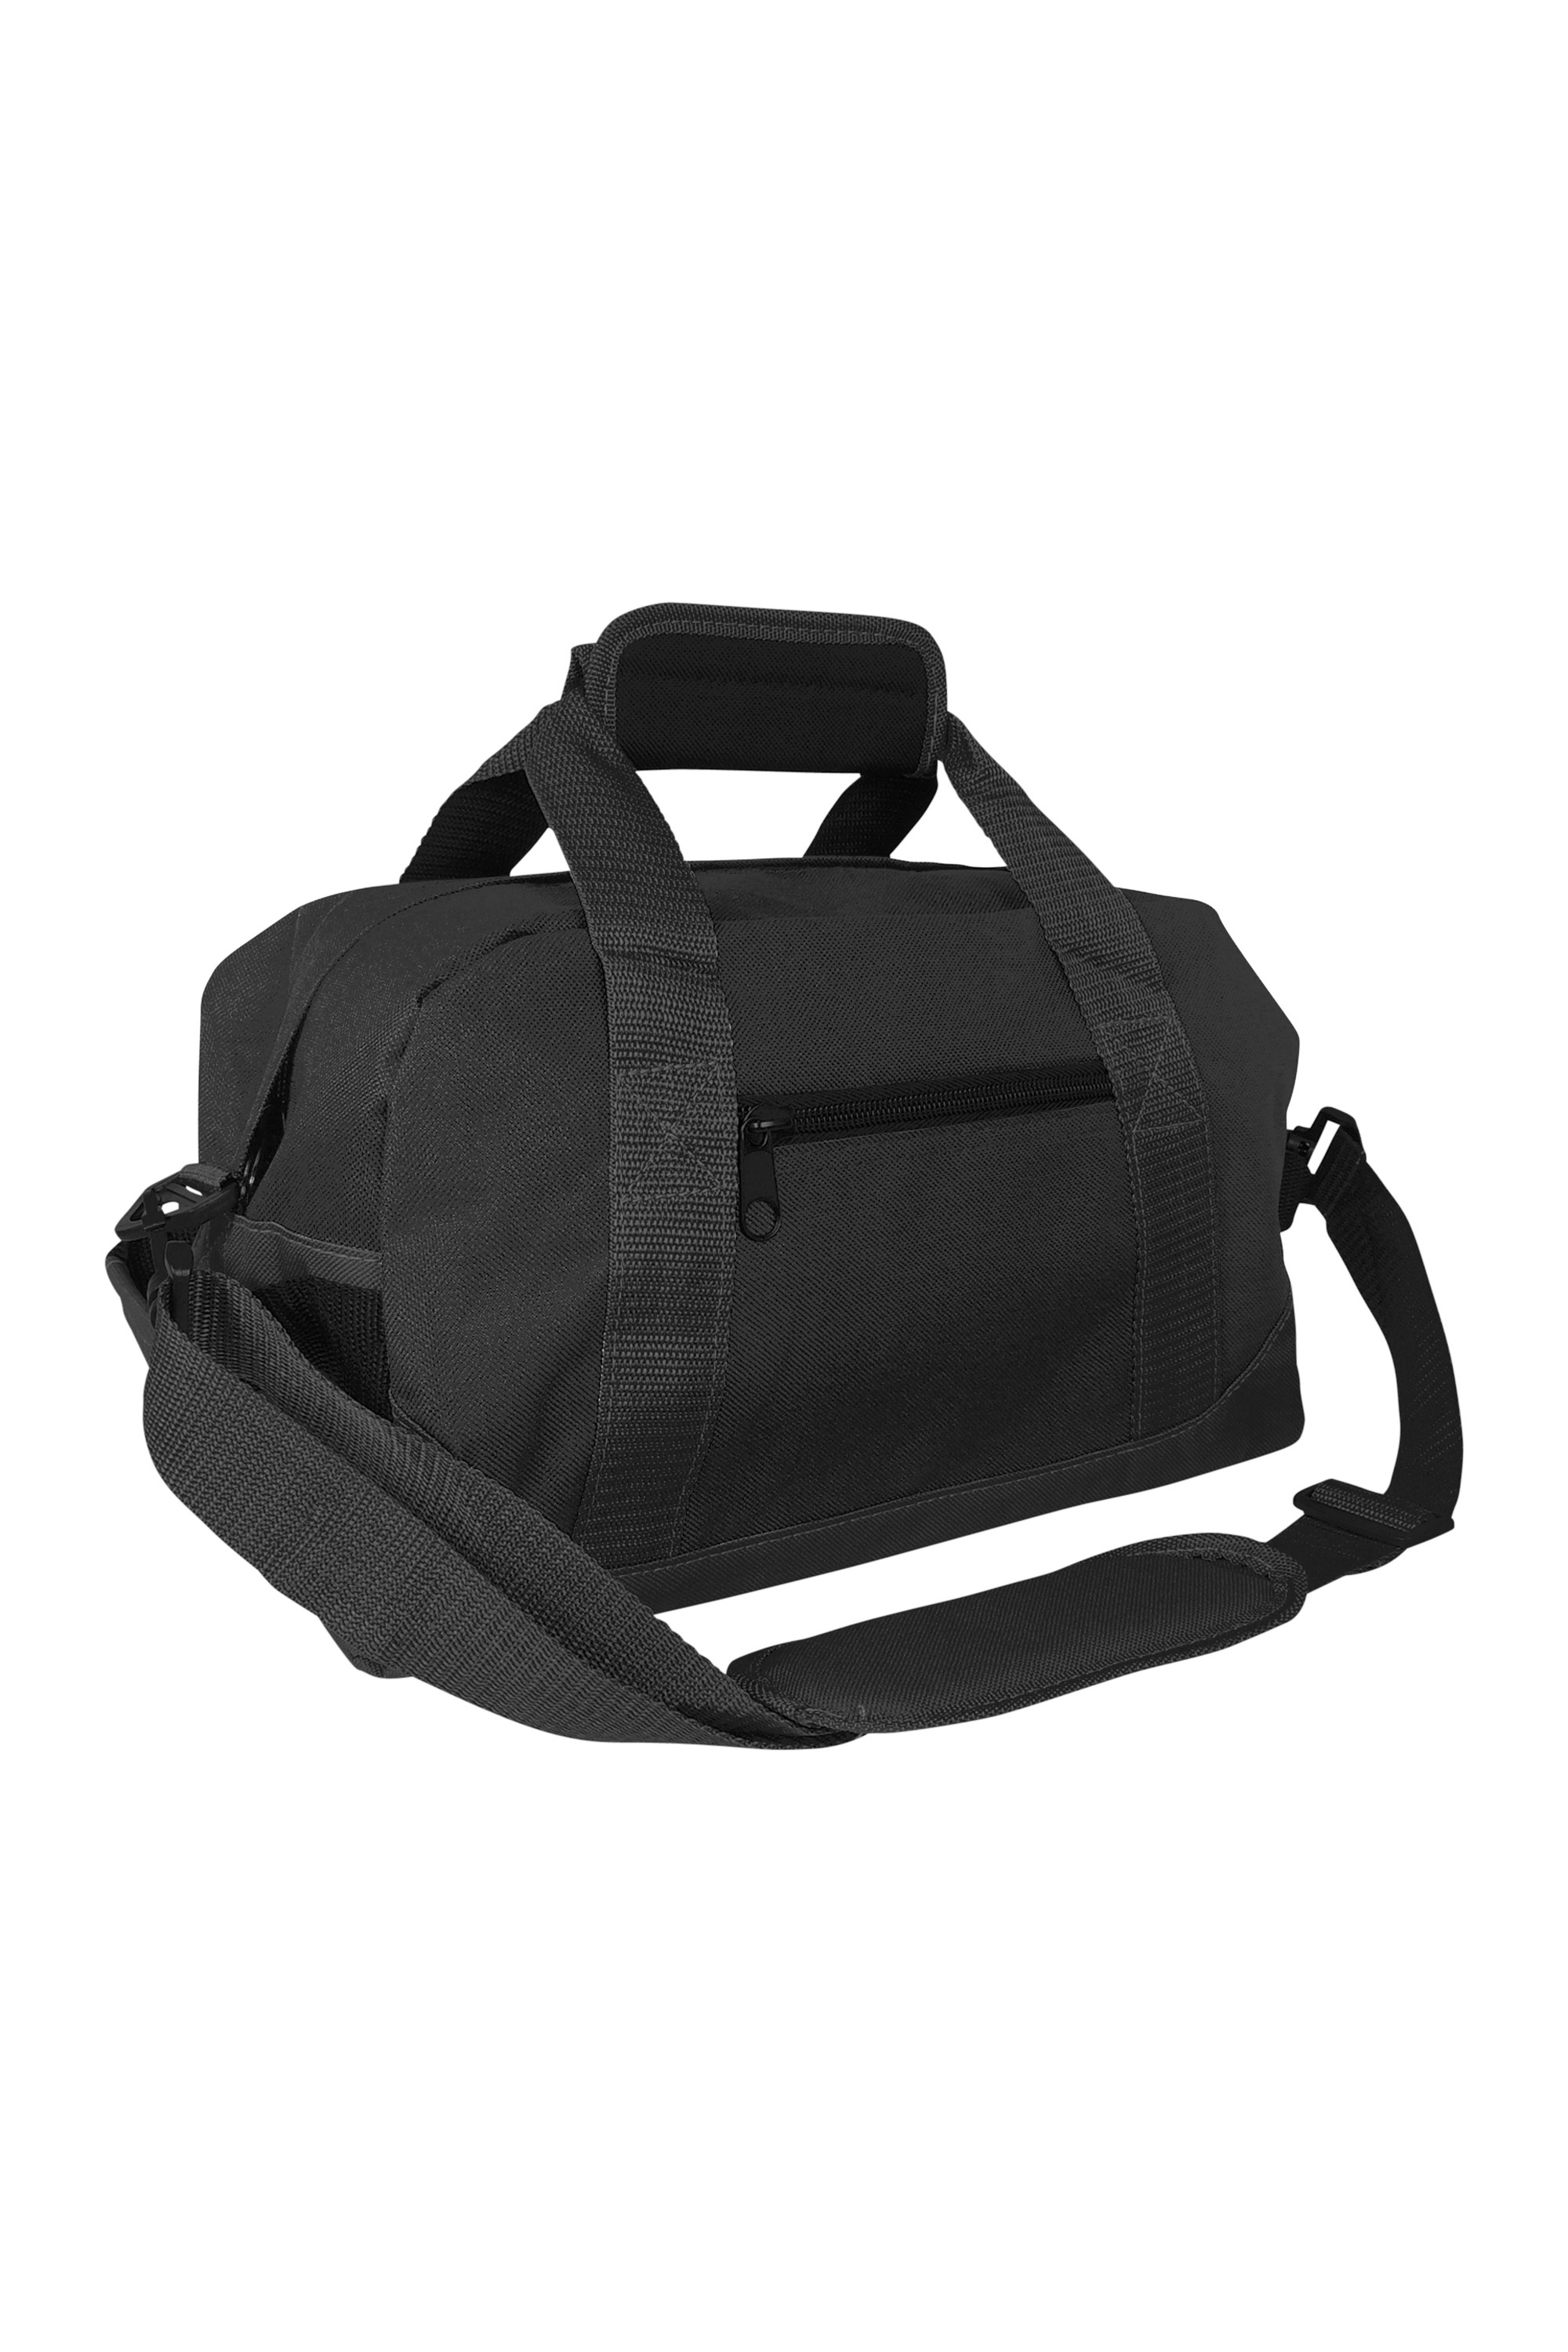 "DALIX 14"" Small Duffel Bag Gym Duffle Two Tone in Black with Shoulder Strap"